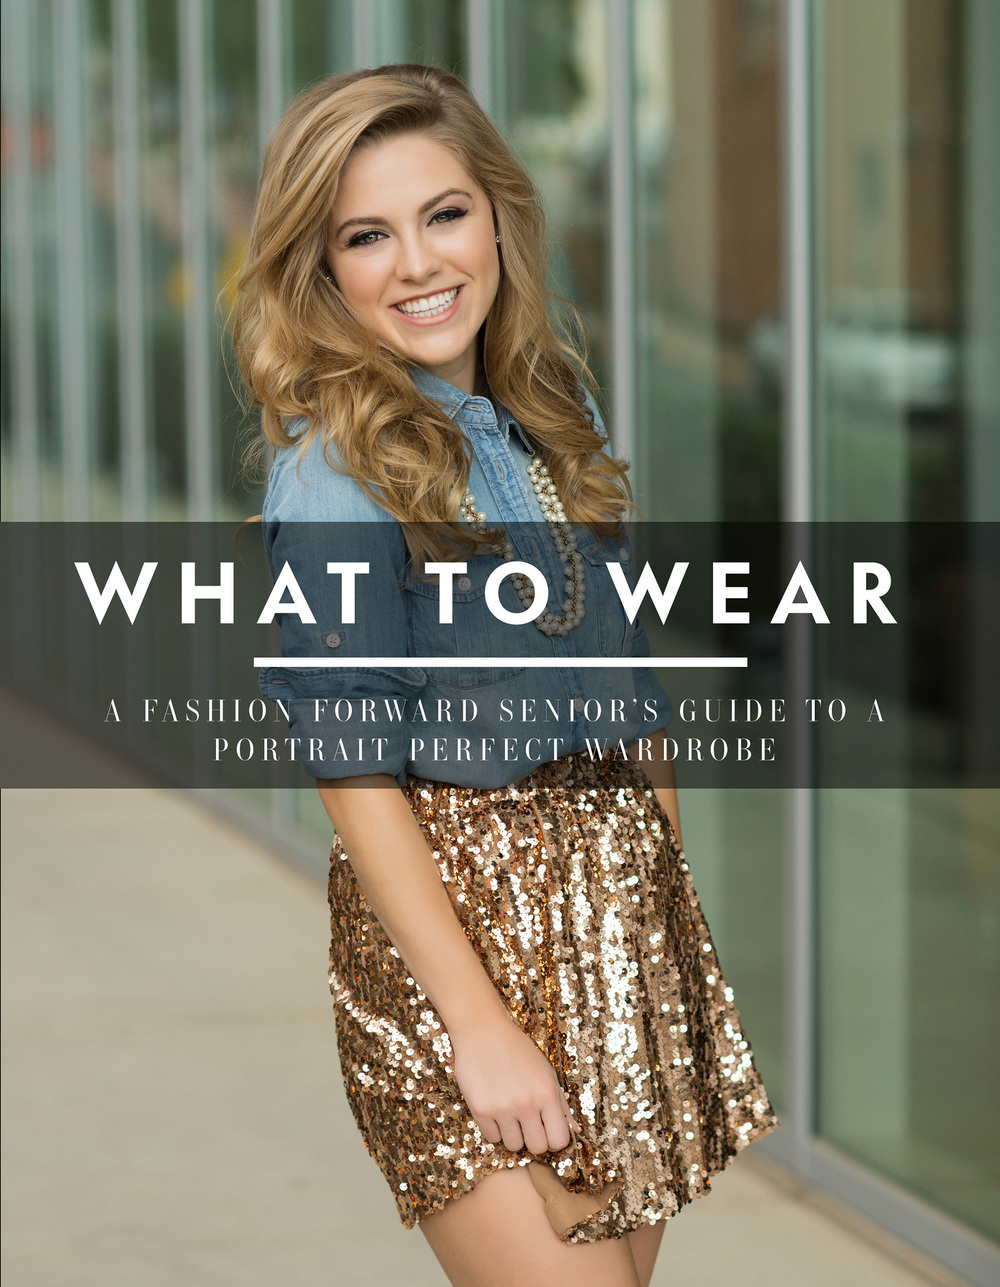 What to Wear Guide - Digital PDF-1-Left.jpg